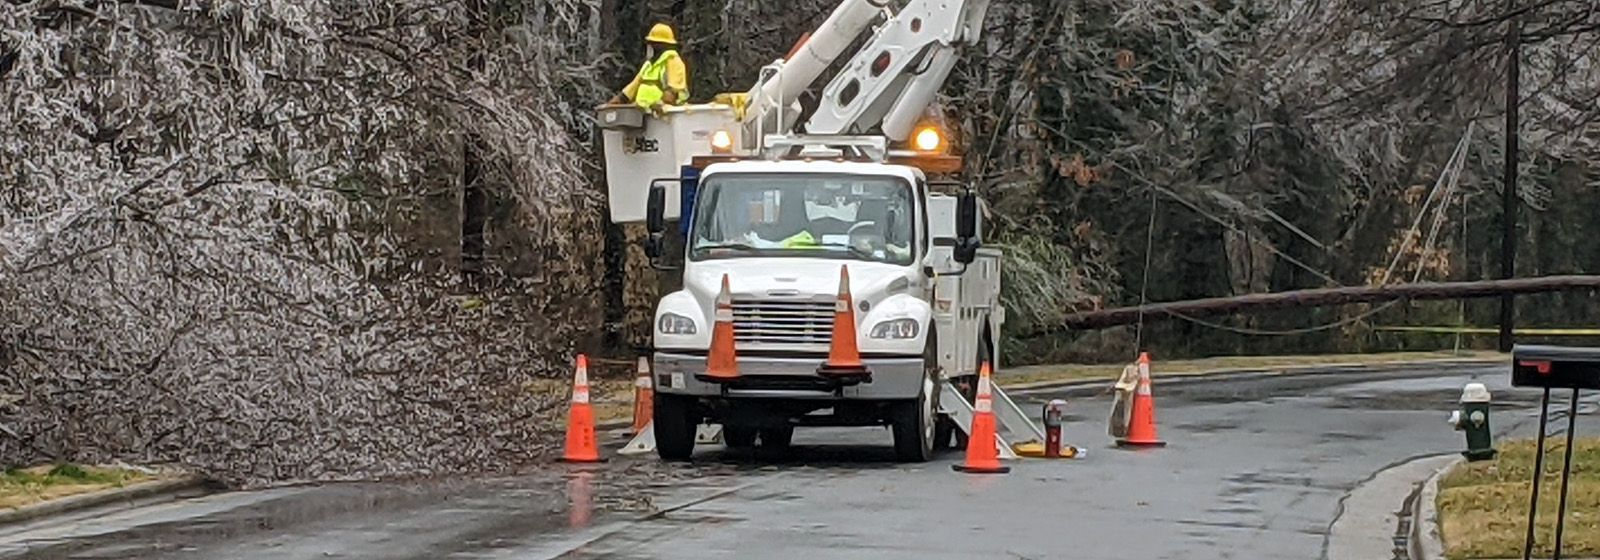 Duke Energy is ready for winter storm as it nears Carolinas. You should be too